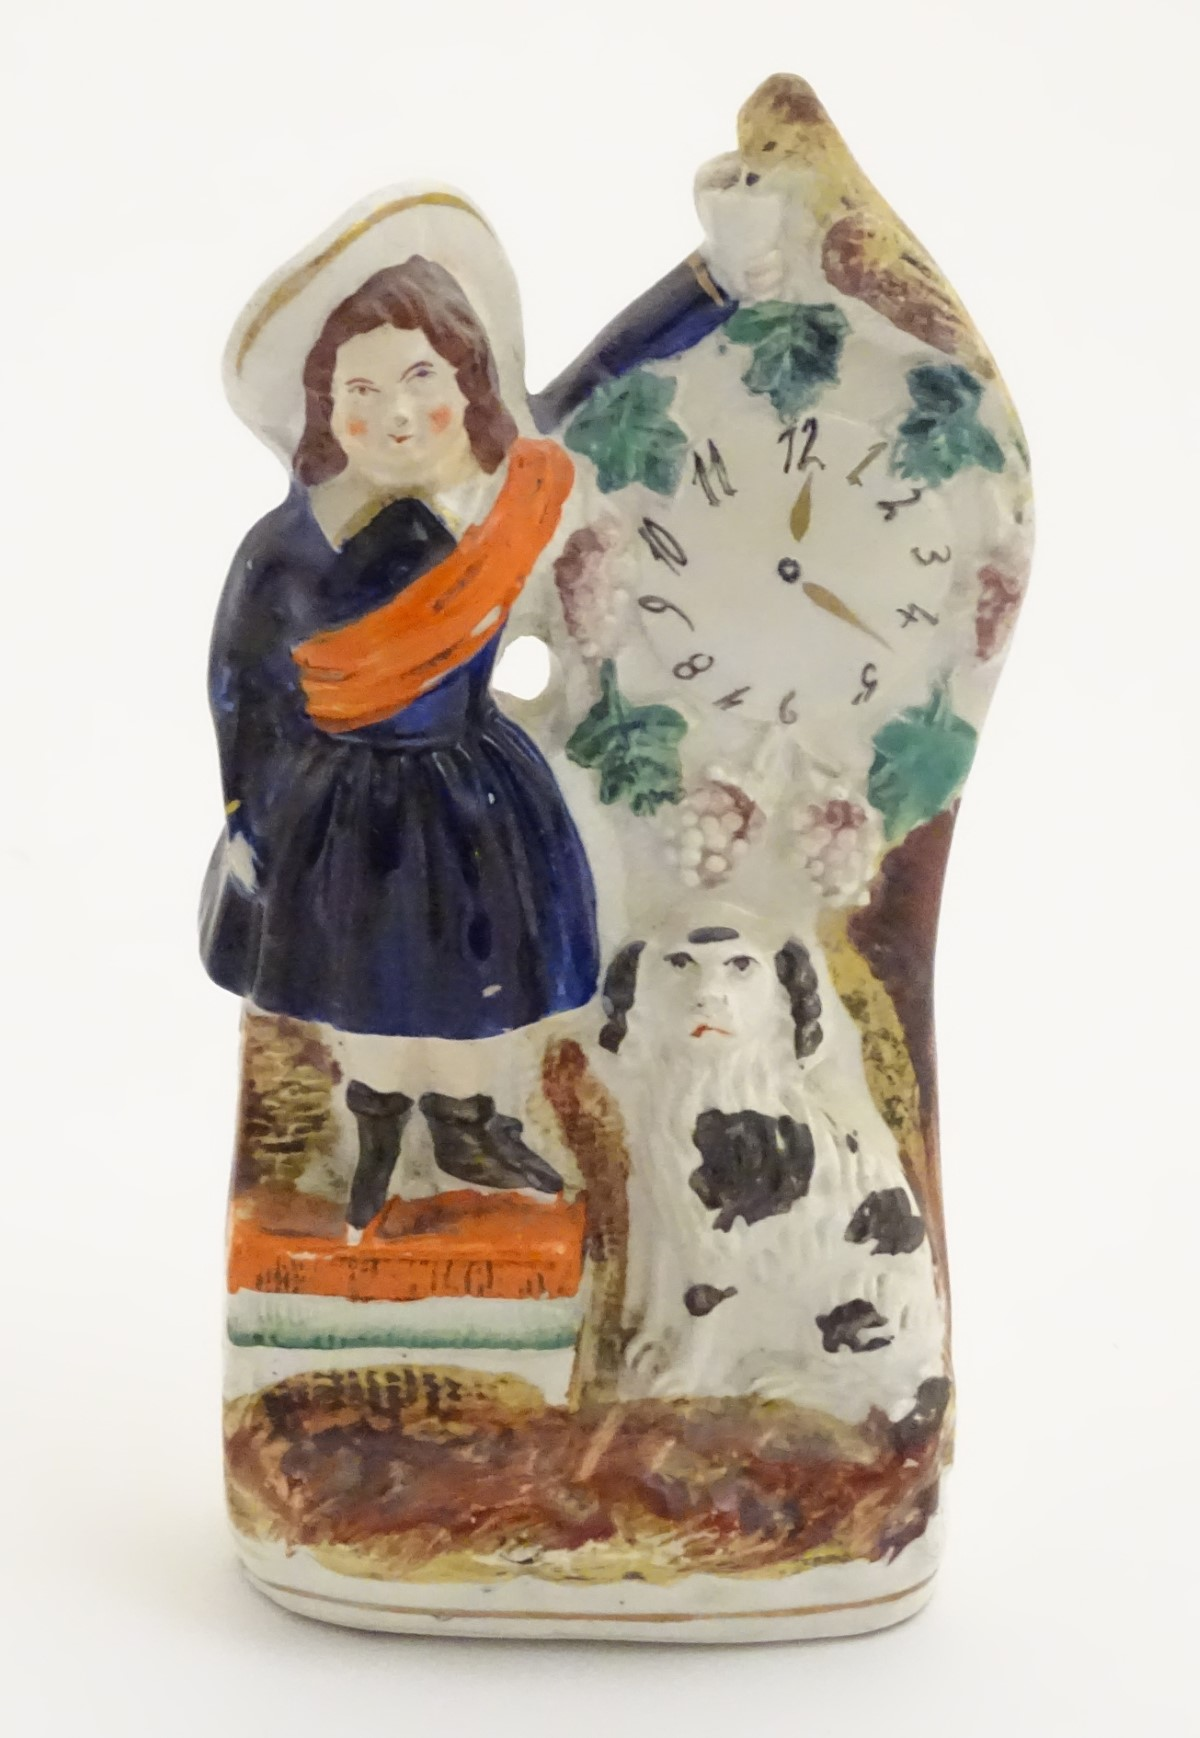 Lot 39 - A Victorian Staffordshire pottery flatback model of a woman wearing a sash feeding a bird next to a